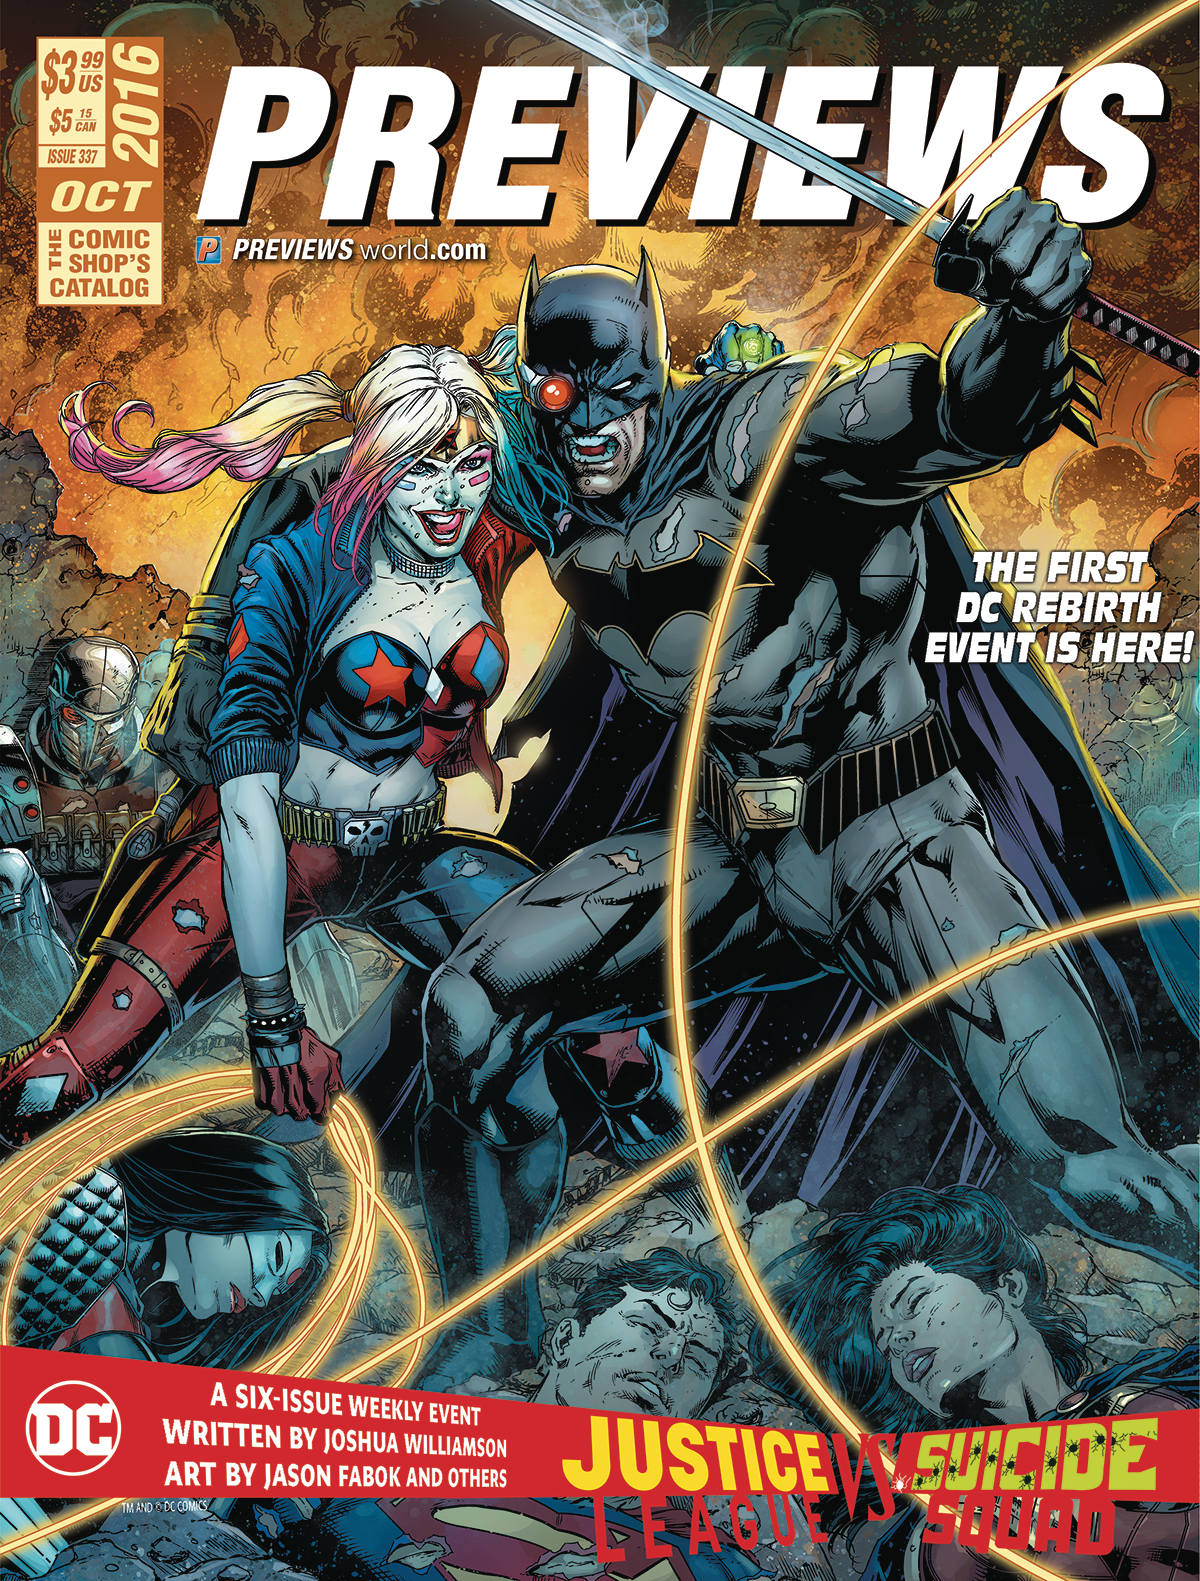 PREVIEWS #337 OCTOBER 2016